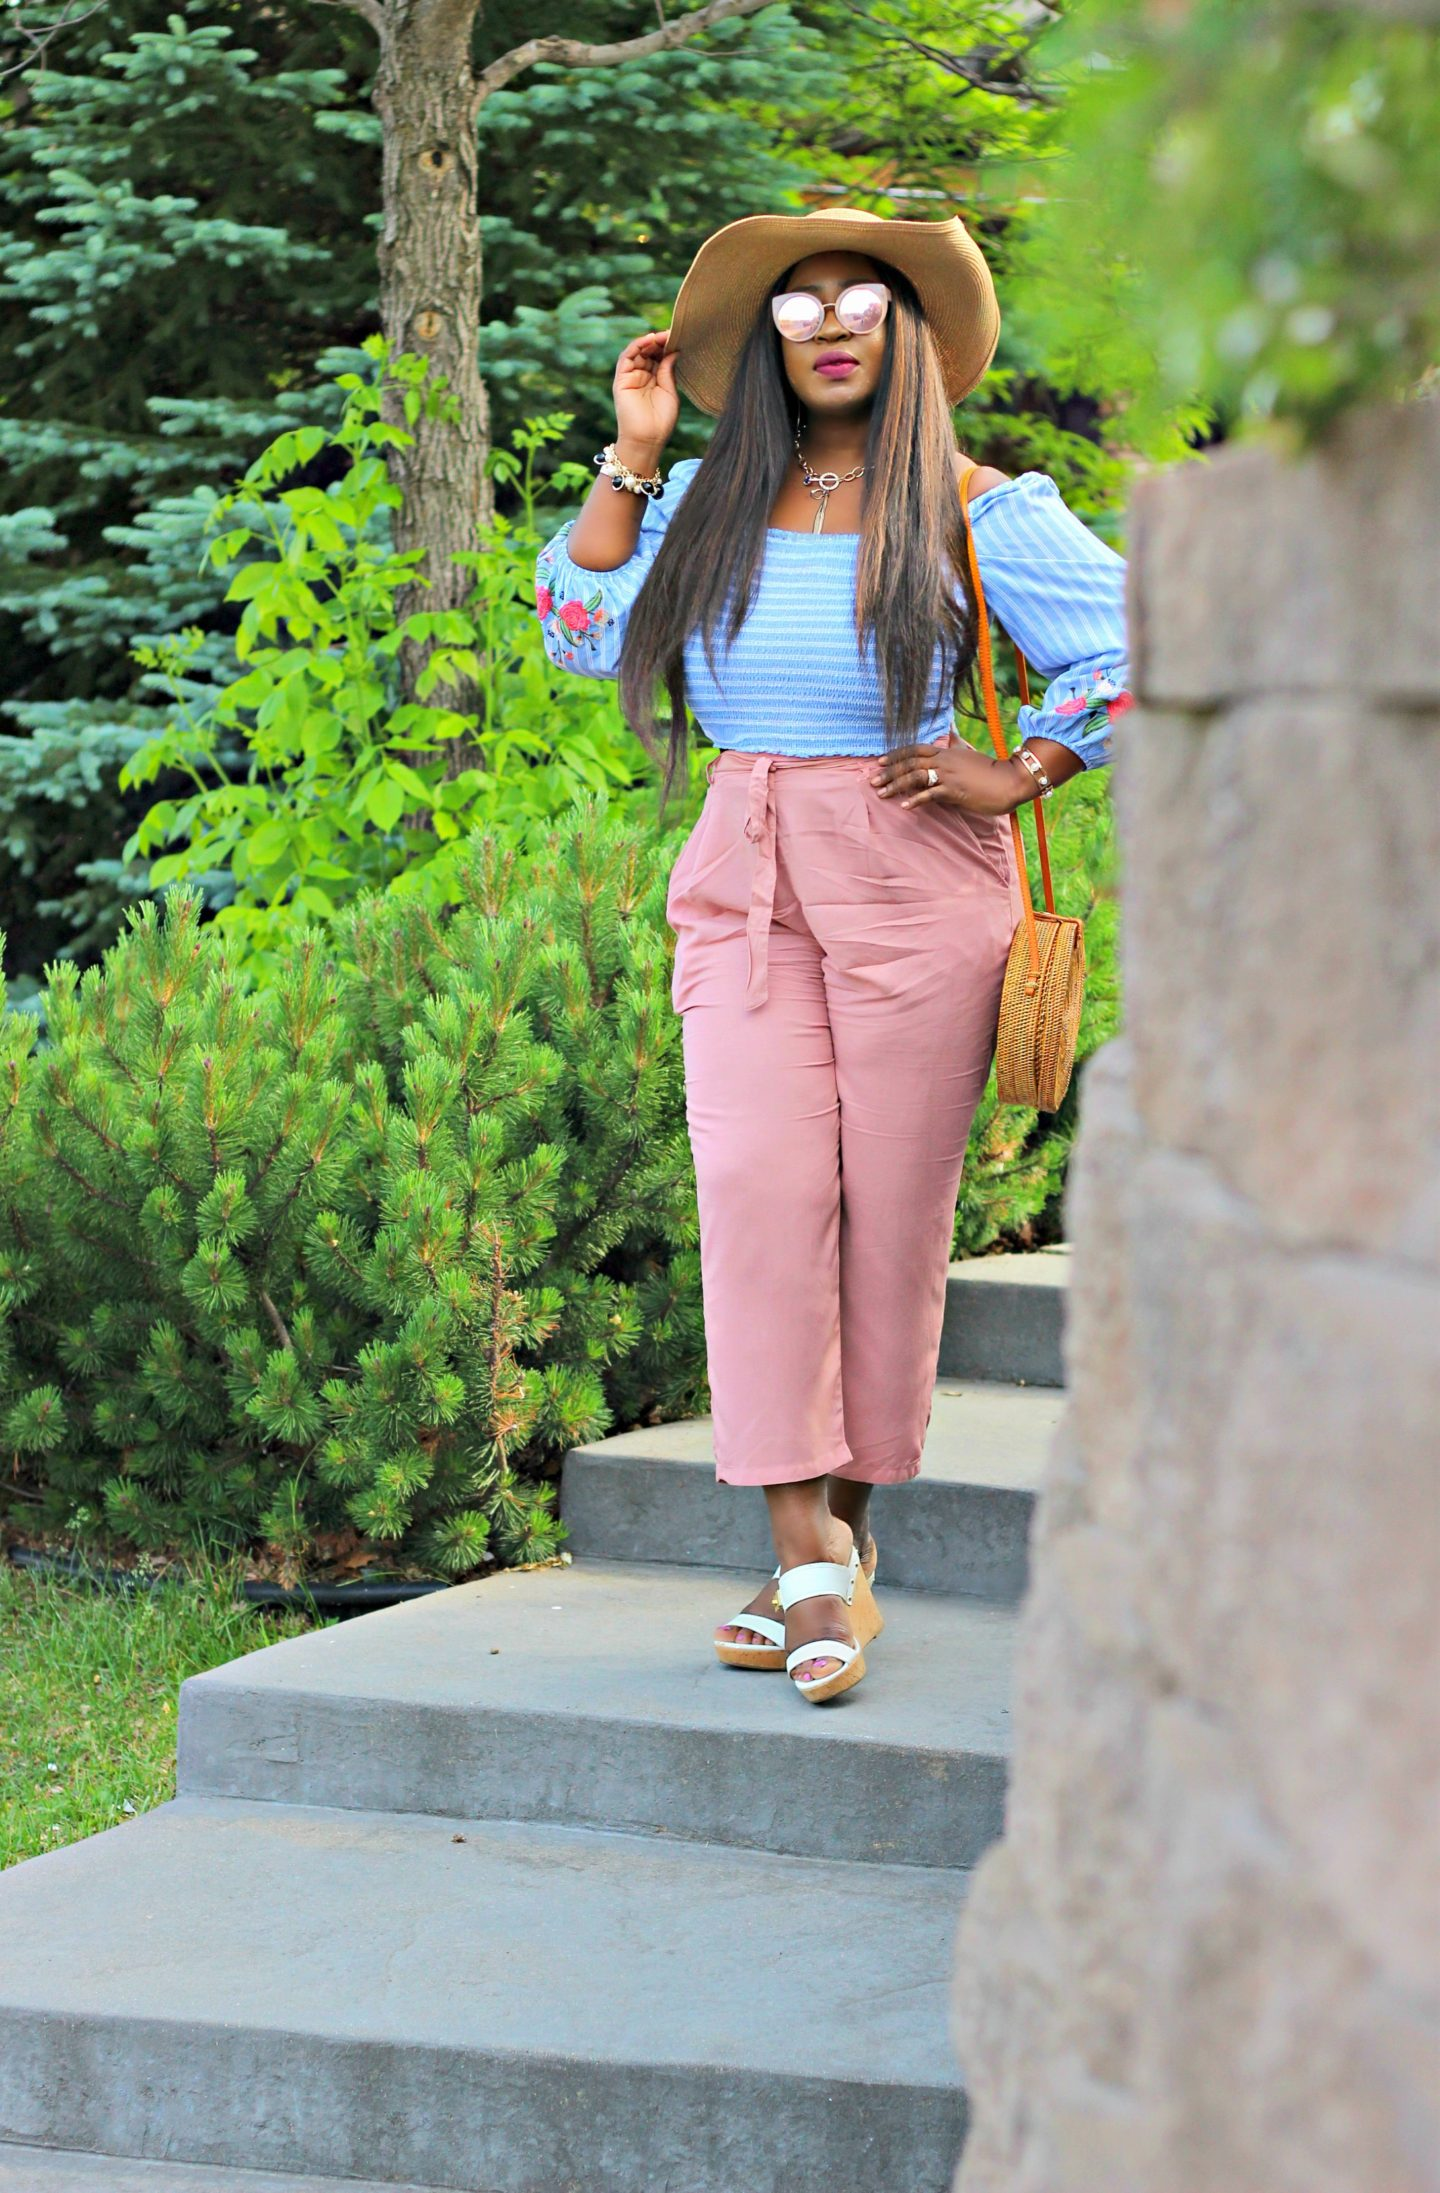 off-the-shoulder-crop-top-chic-casual